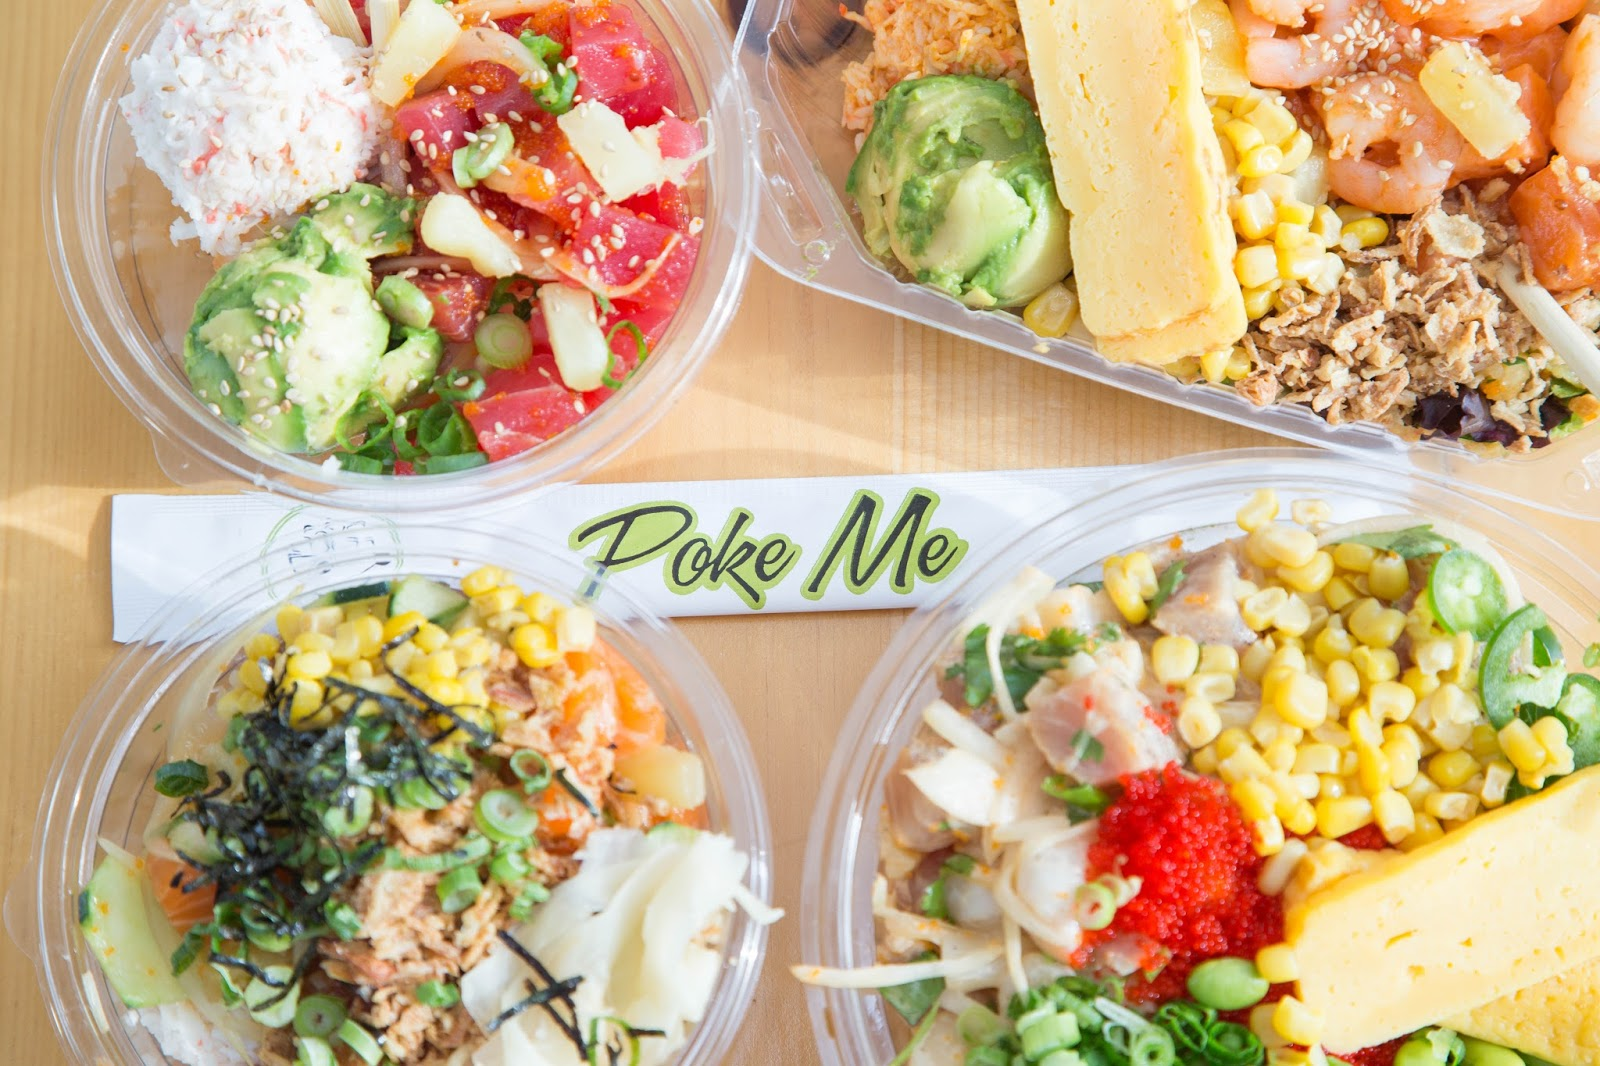 Aug 18 | Poke Me Opens First Orange County Location in Irvine - Free Swag For Guests